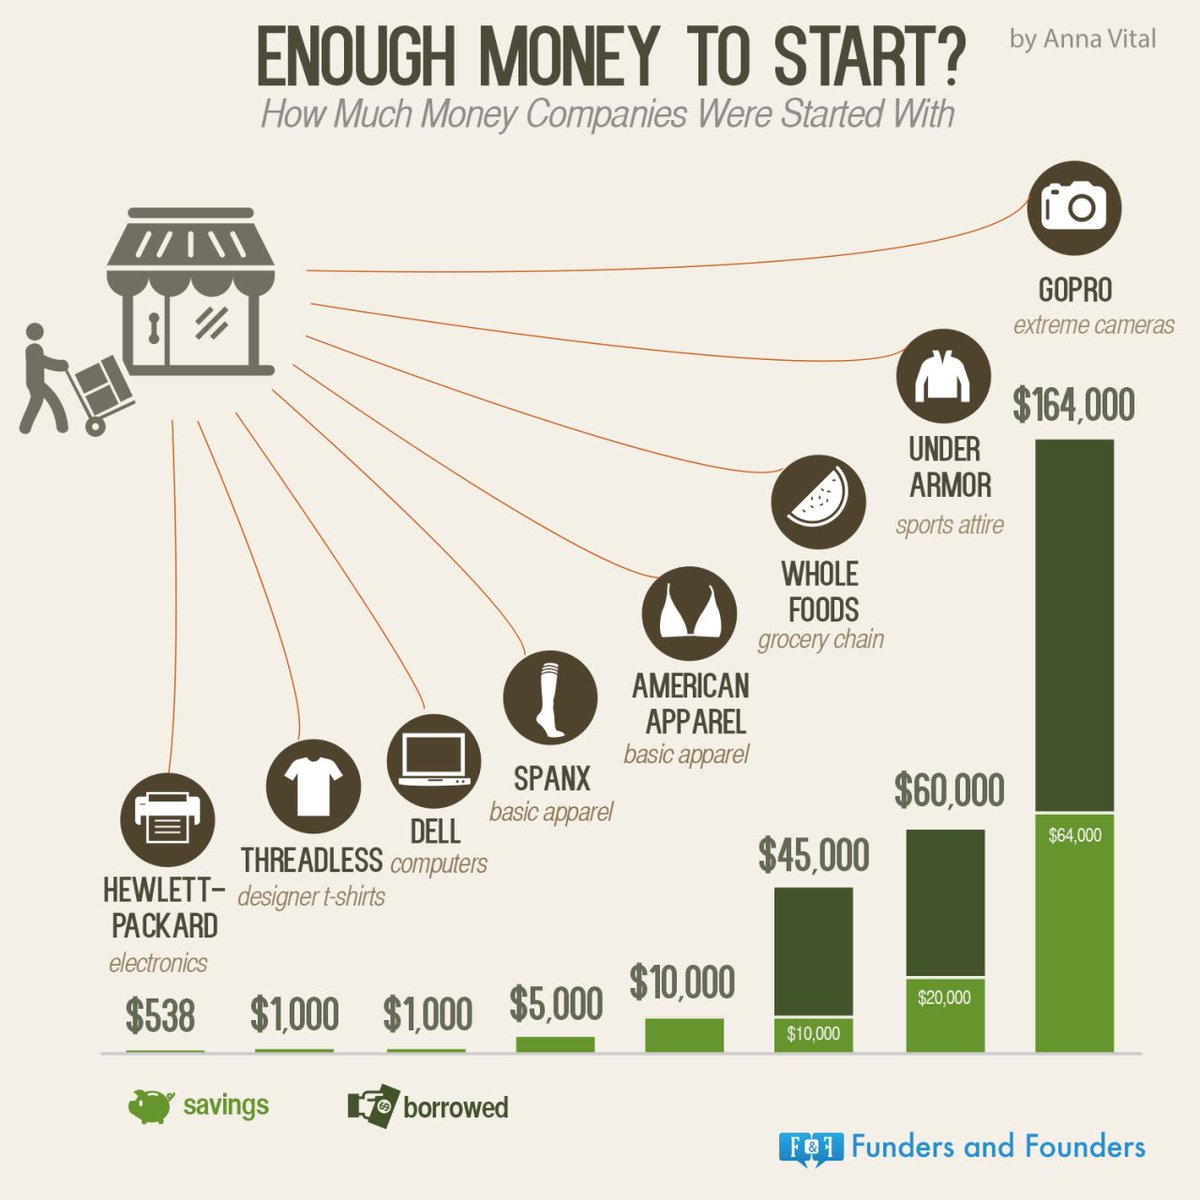 #Startup initial #Funding. @HP had only $538! #Leadership #Innovation #GrowthHacking #SME #makeyourownlane #defstar5 #Socialmedia #SEO #SMM<br>http://pic.twitter.com/u8XdIL8WJl